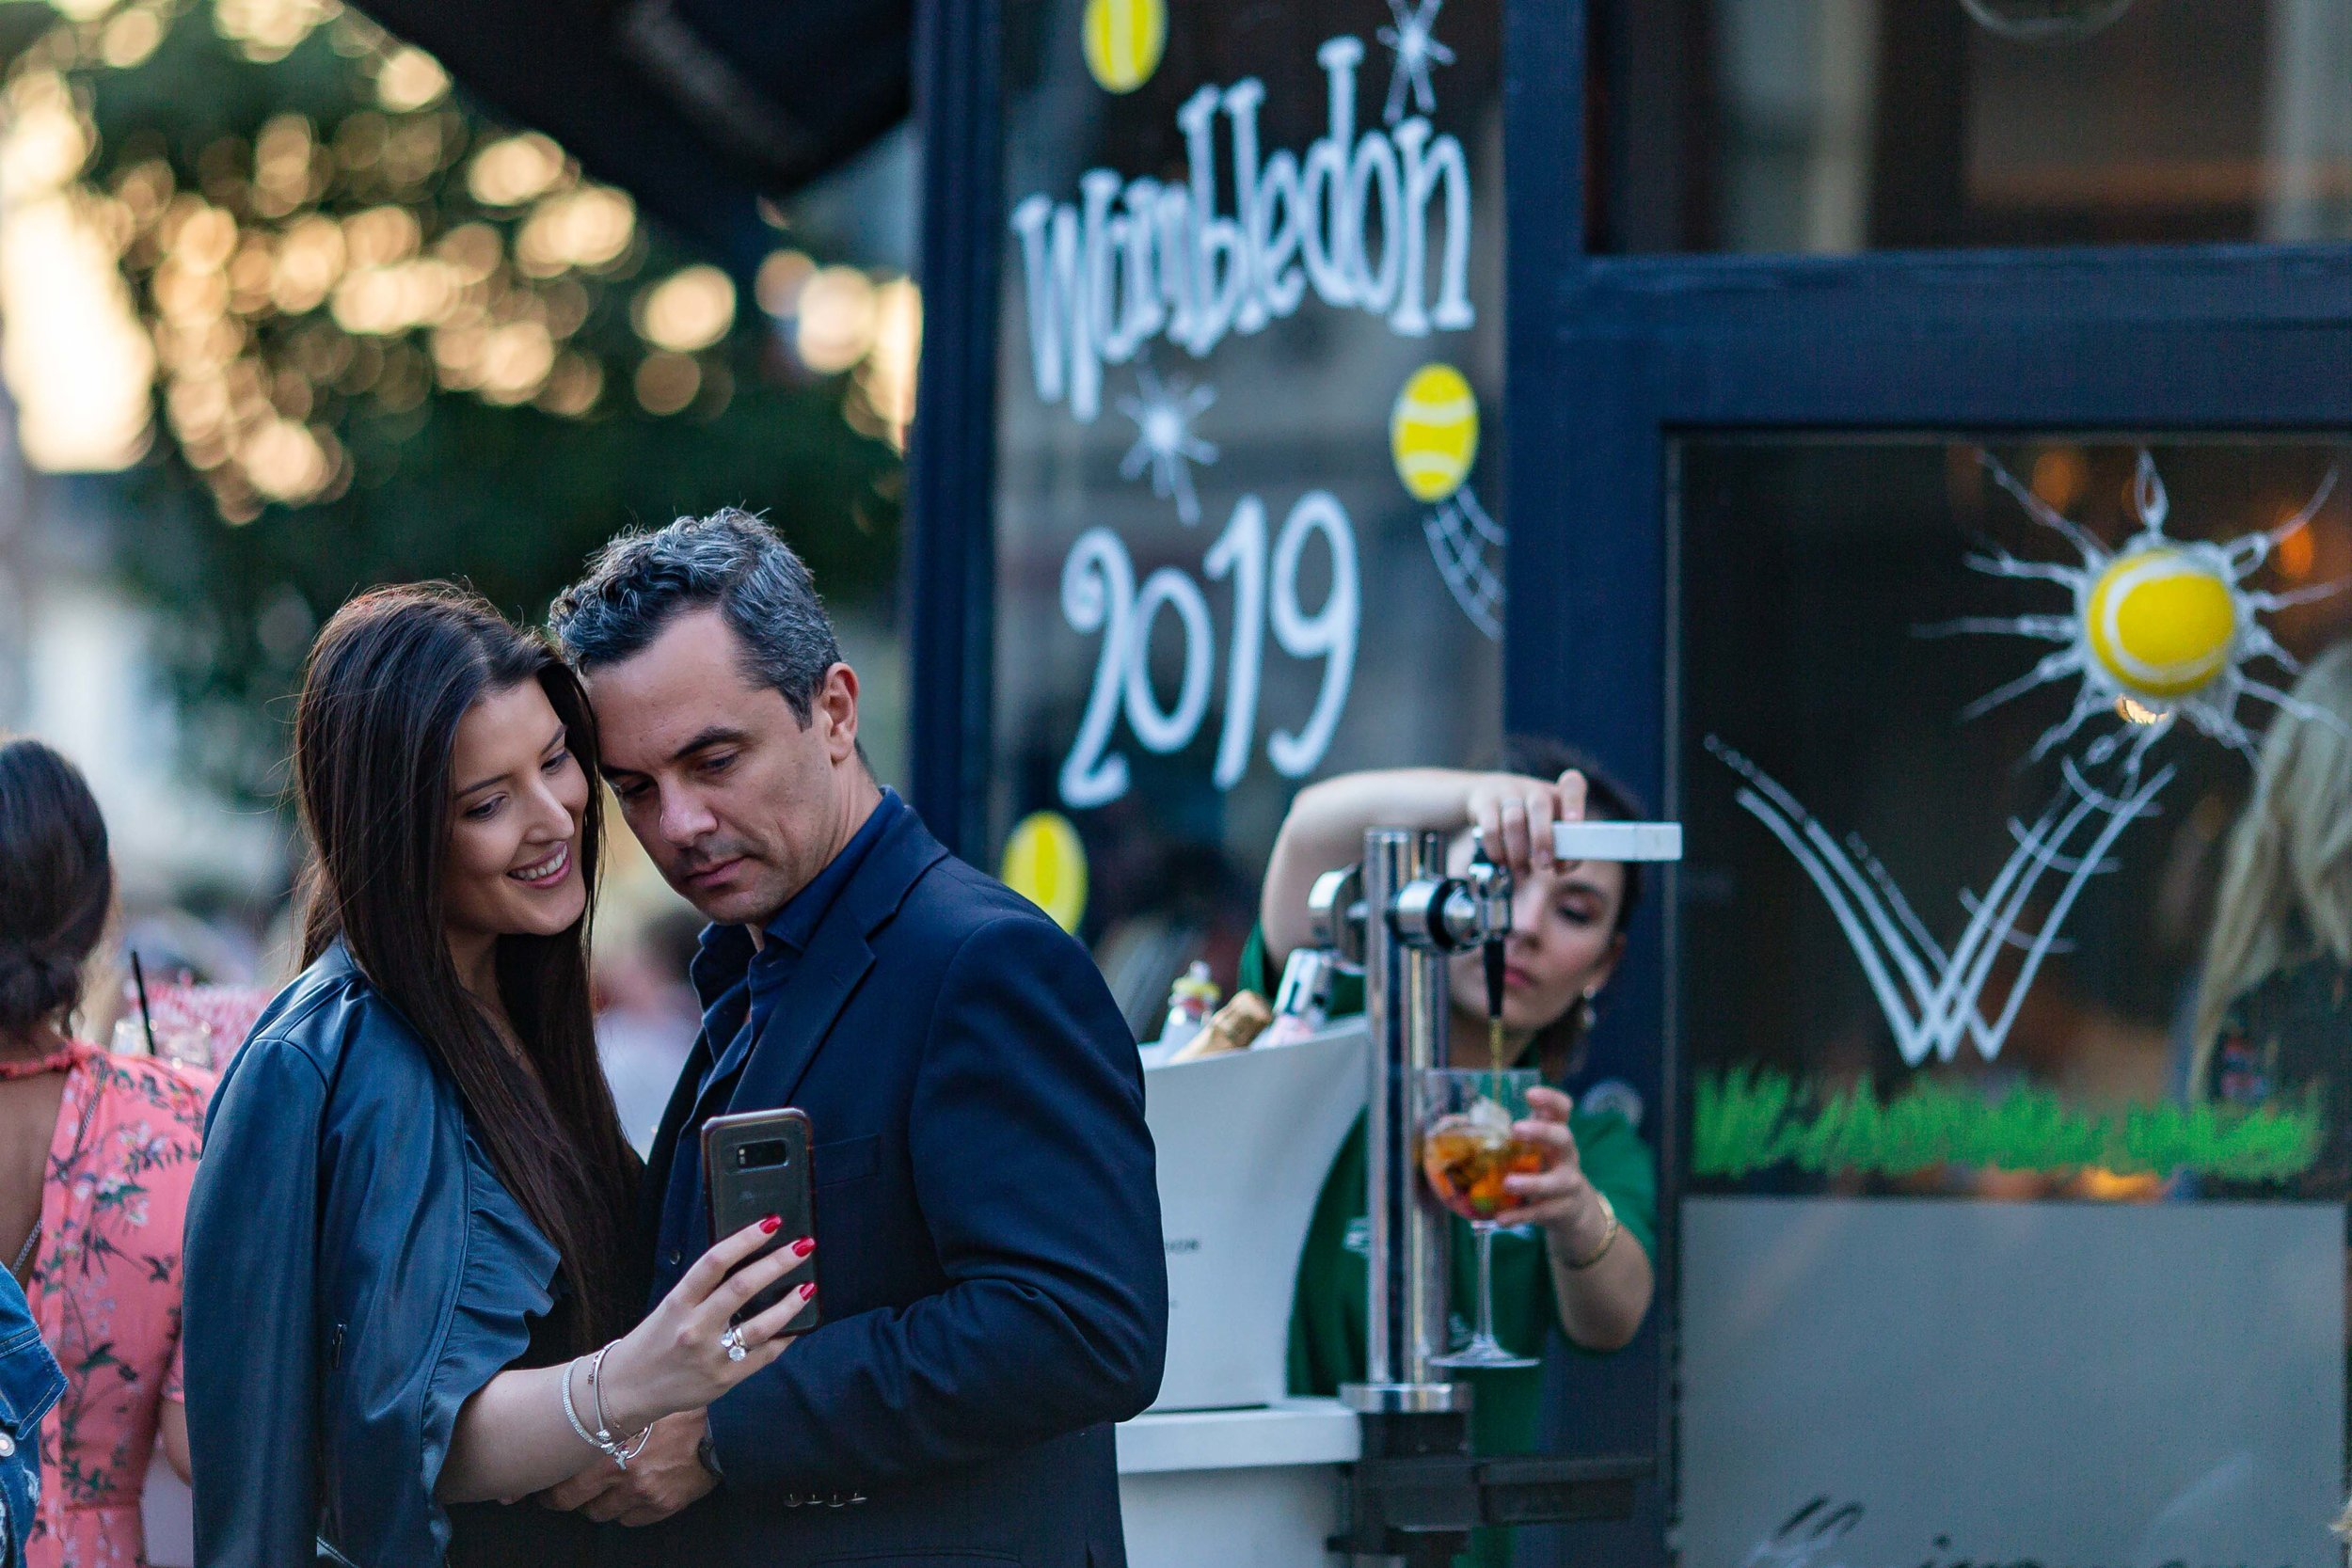 A couple interacts, as a bar lady pours a glass of Pimm's, after watching Roger Federer beat Rafael Nadal in four sets to reach Wimbledon men's final, on the 12 July in Wimbledon Village, London.